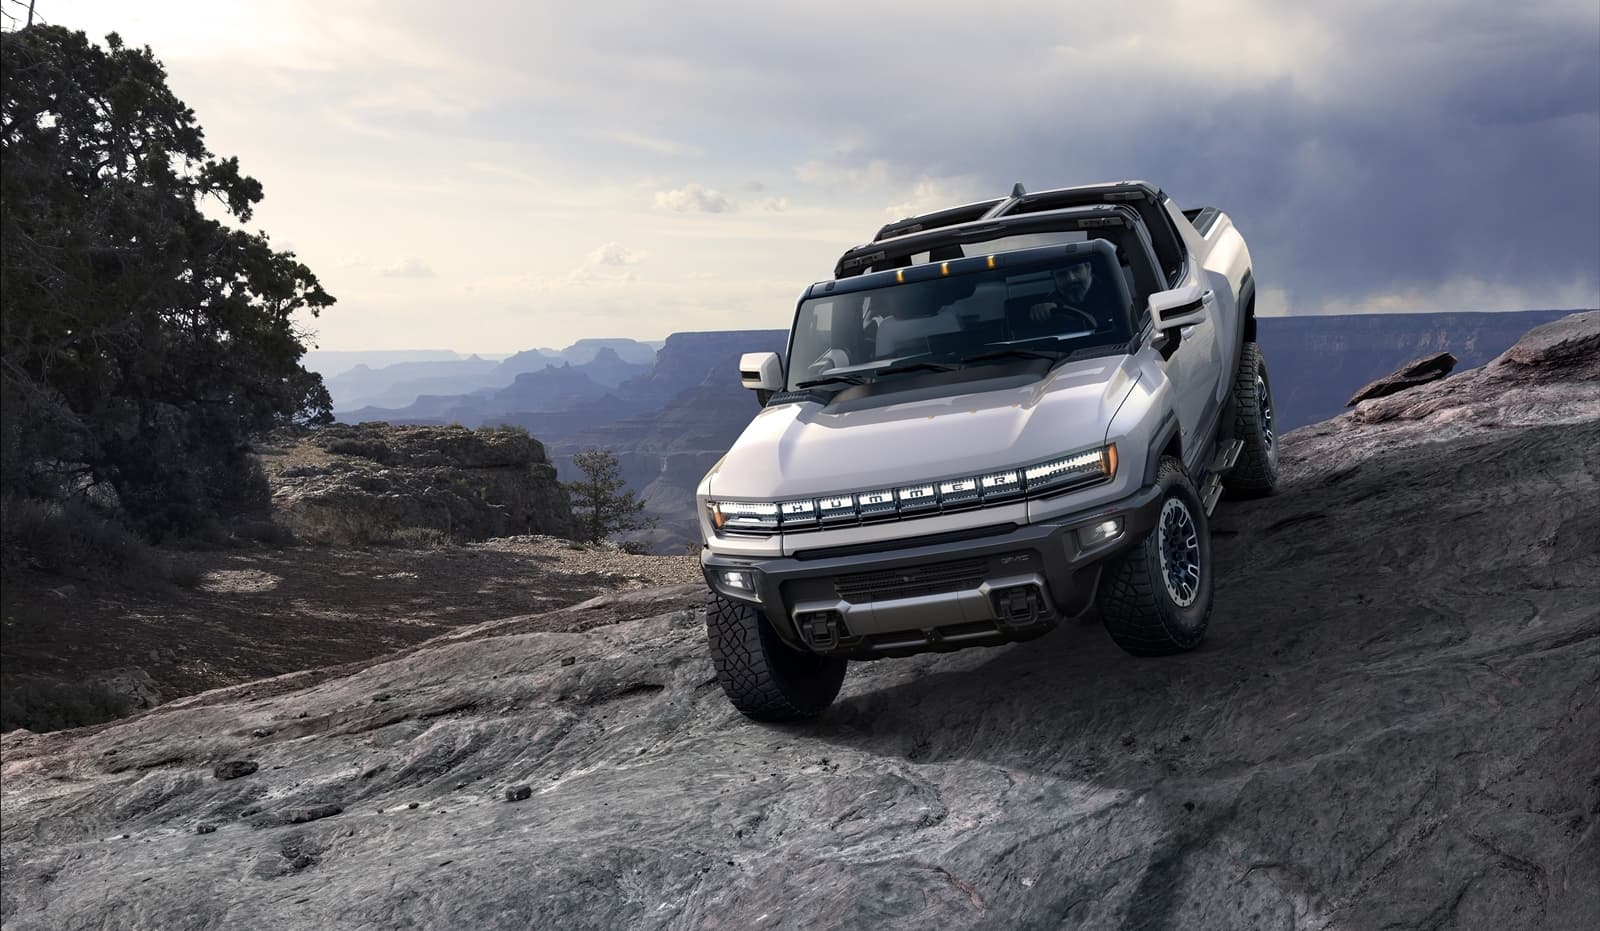 The 2022 Gmc Hummer Ev Is A First Of Its Kind Supertruck Develop